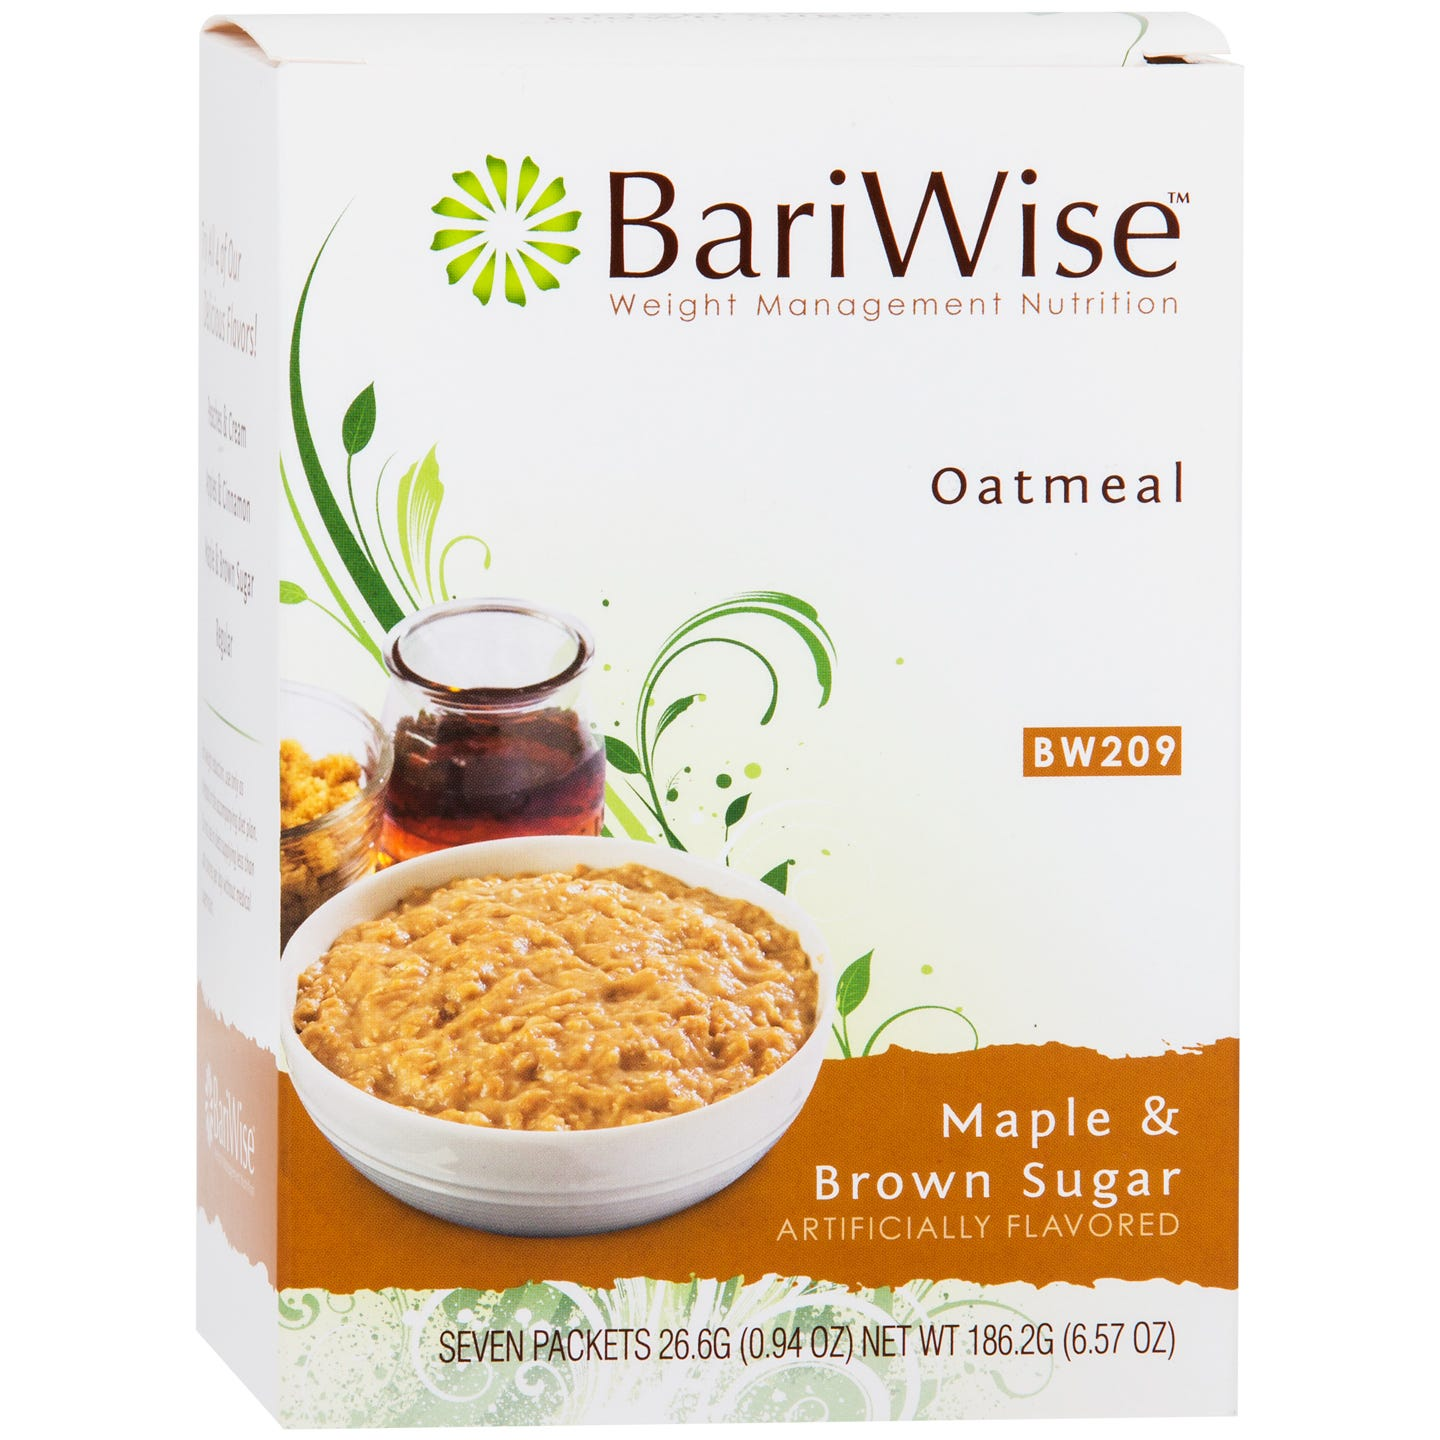 BariWise Oatmeal, Maple & Brown Sugar (7ct)